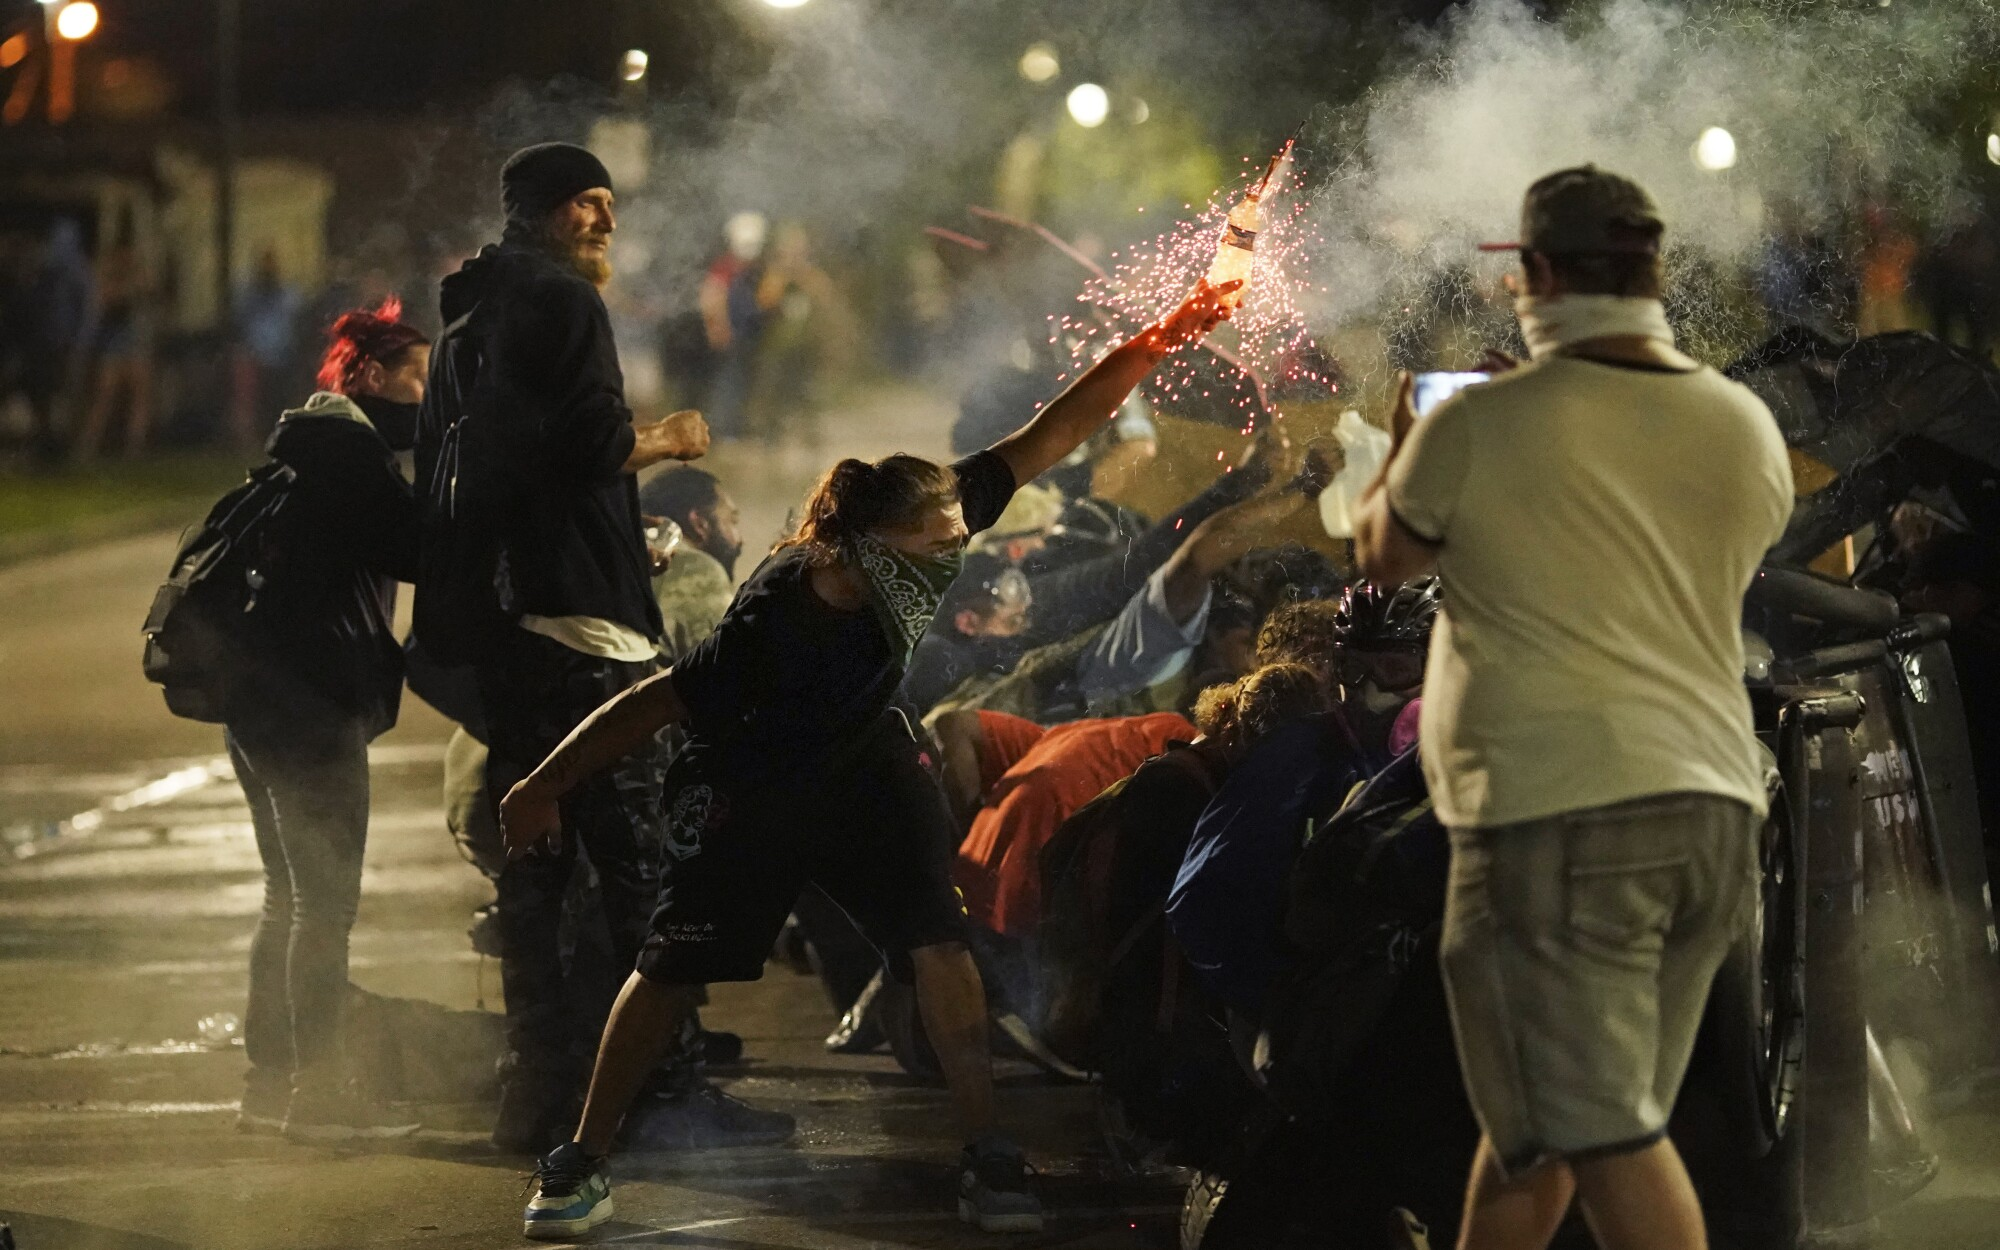 A protester tosses